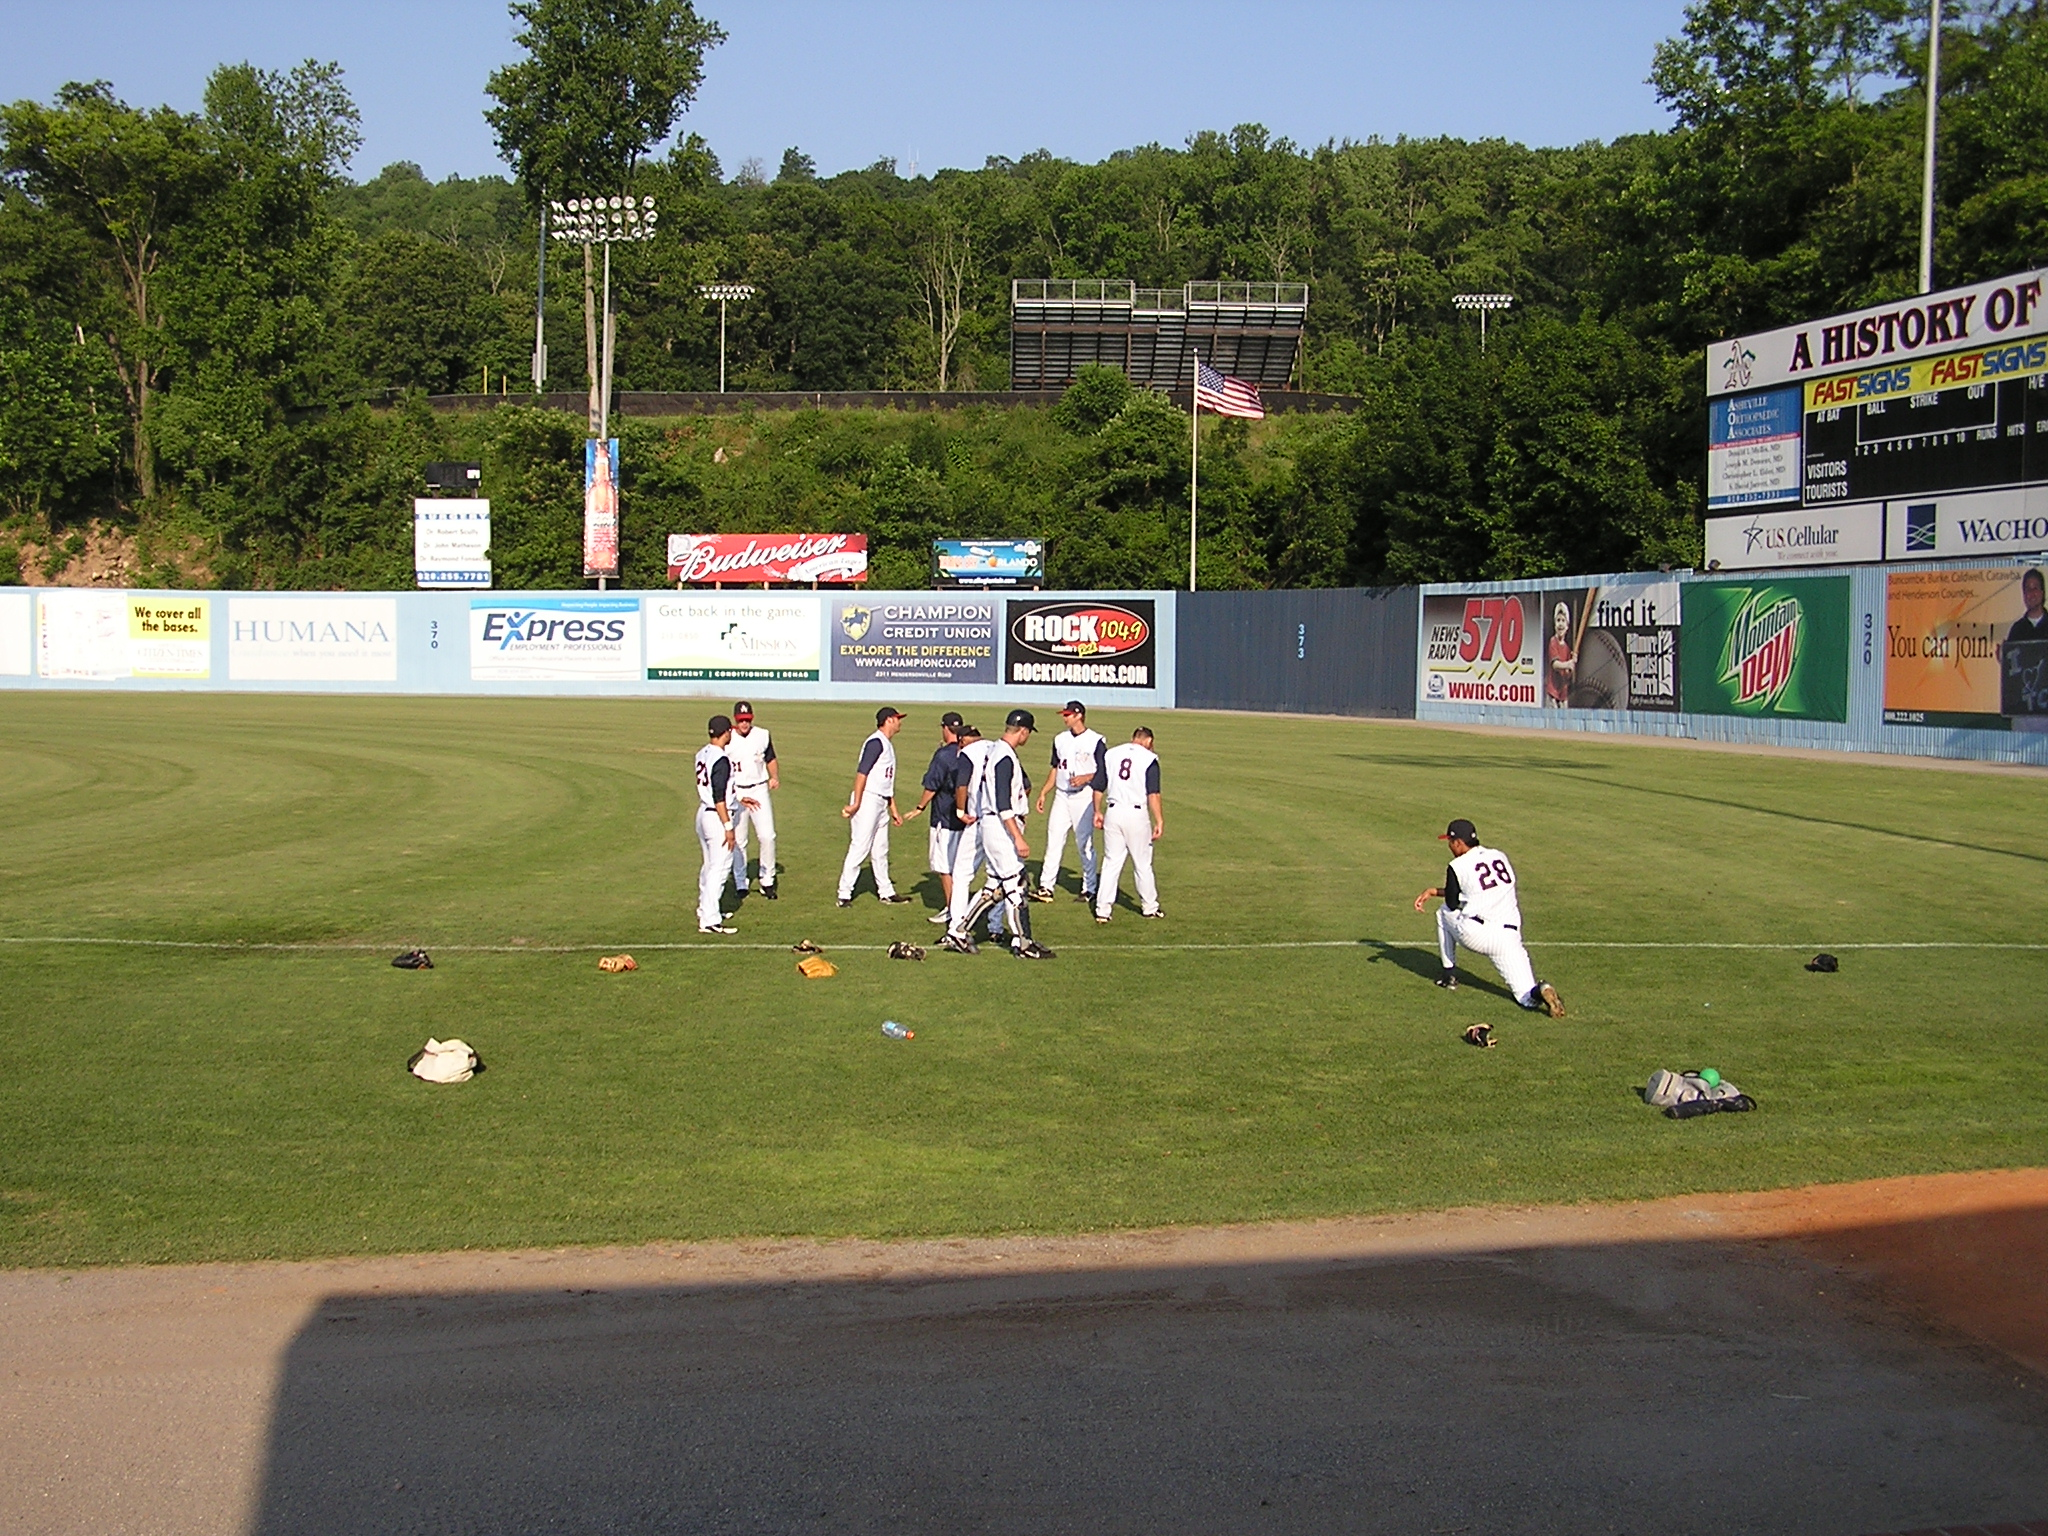 Pre-Game warmups at McCormick Field